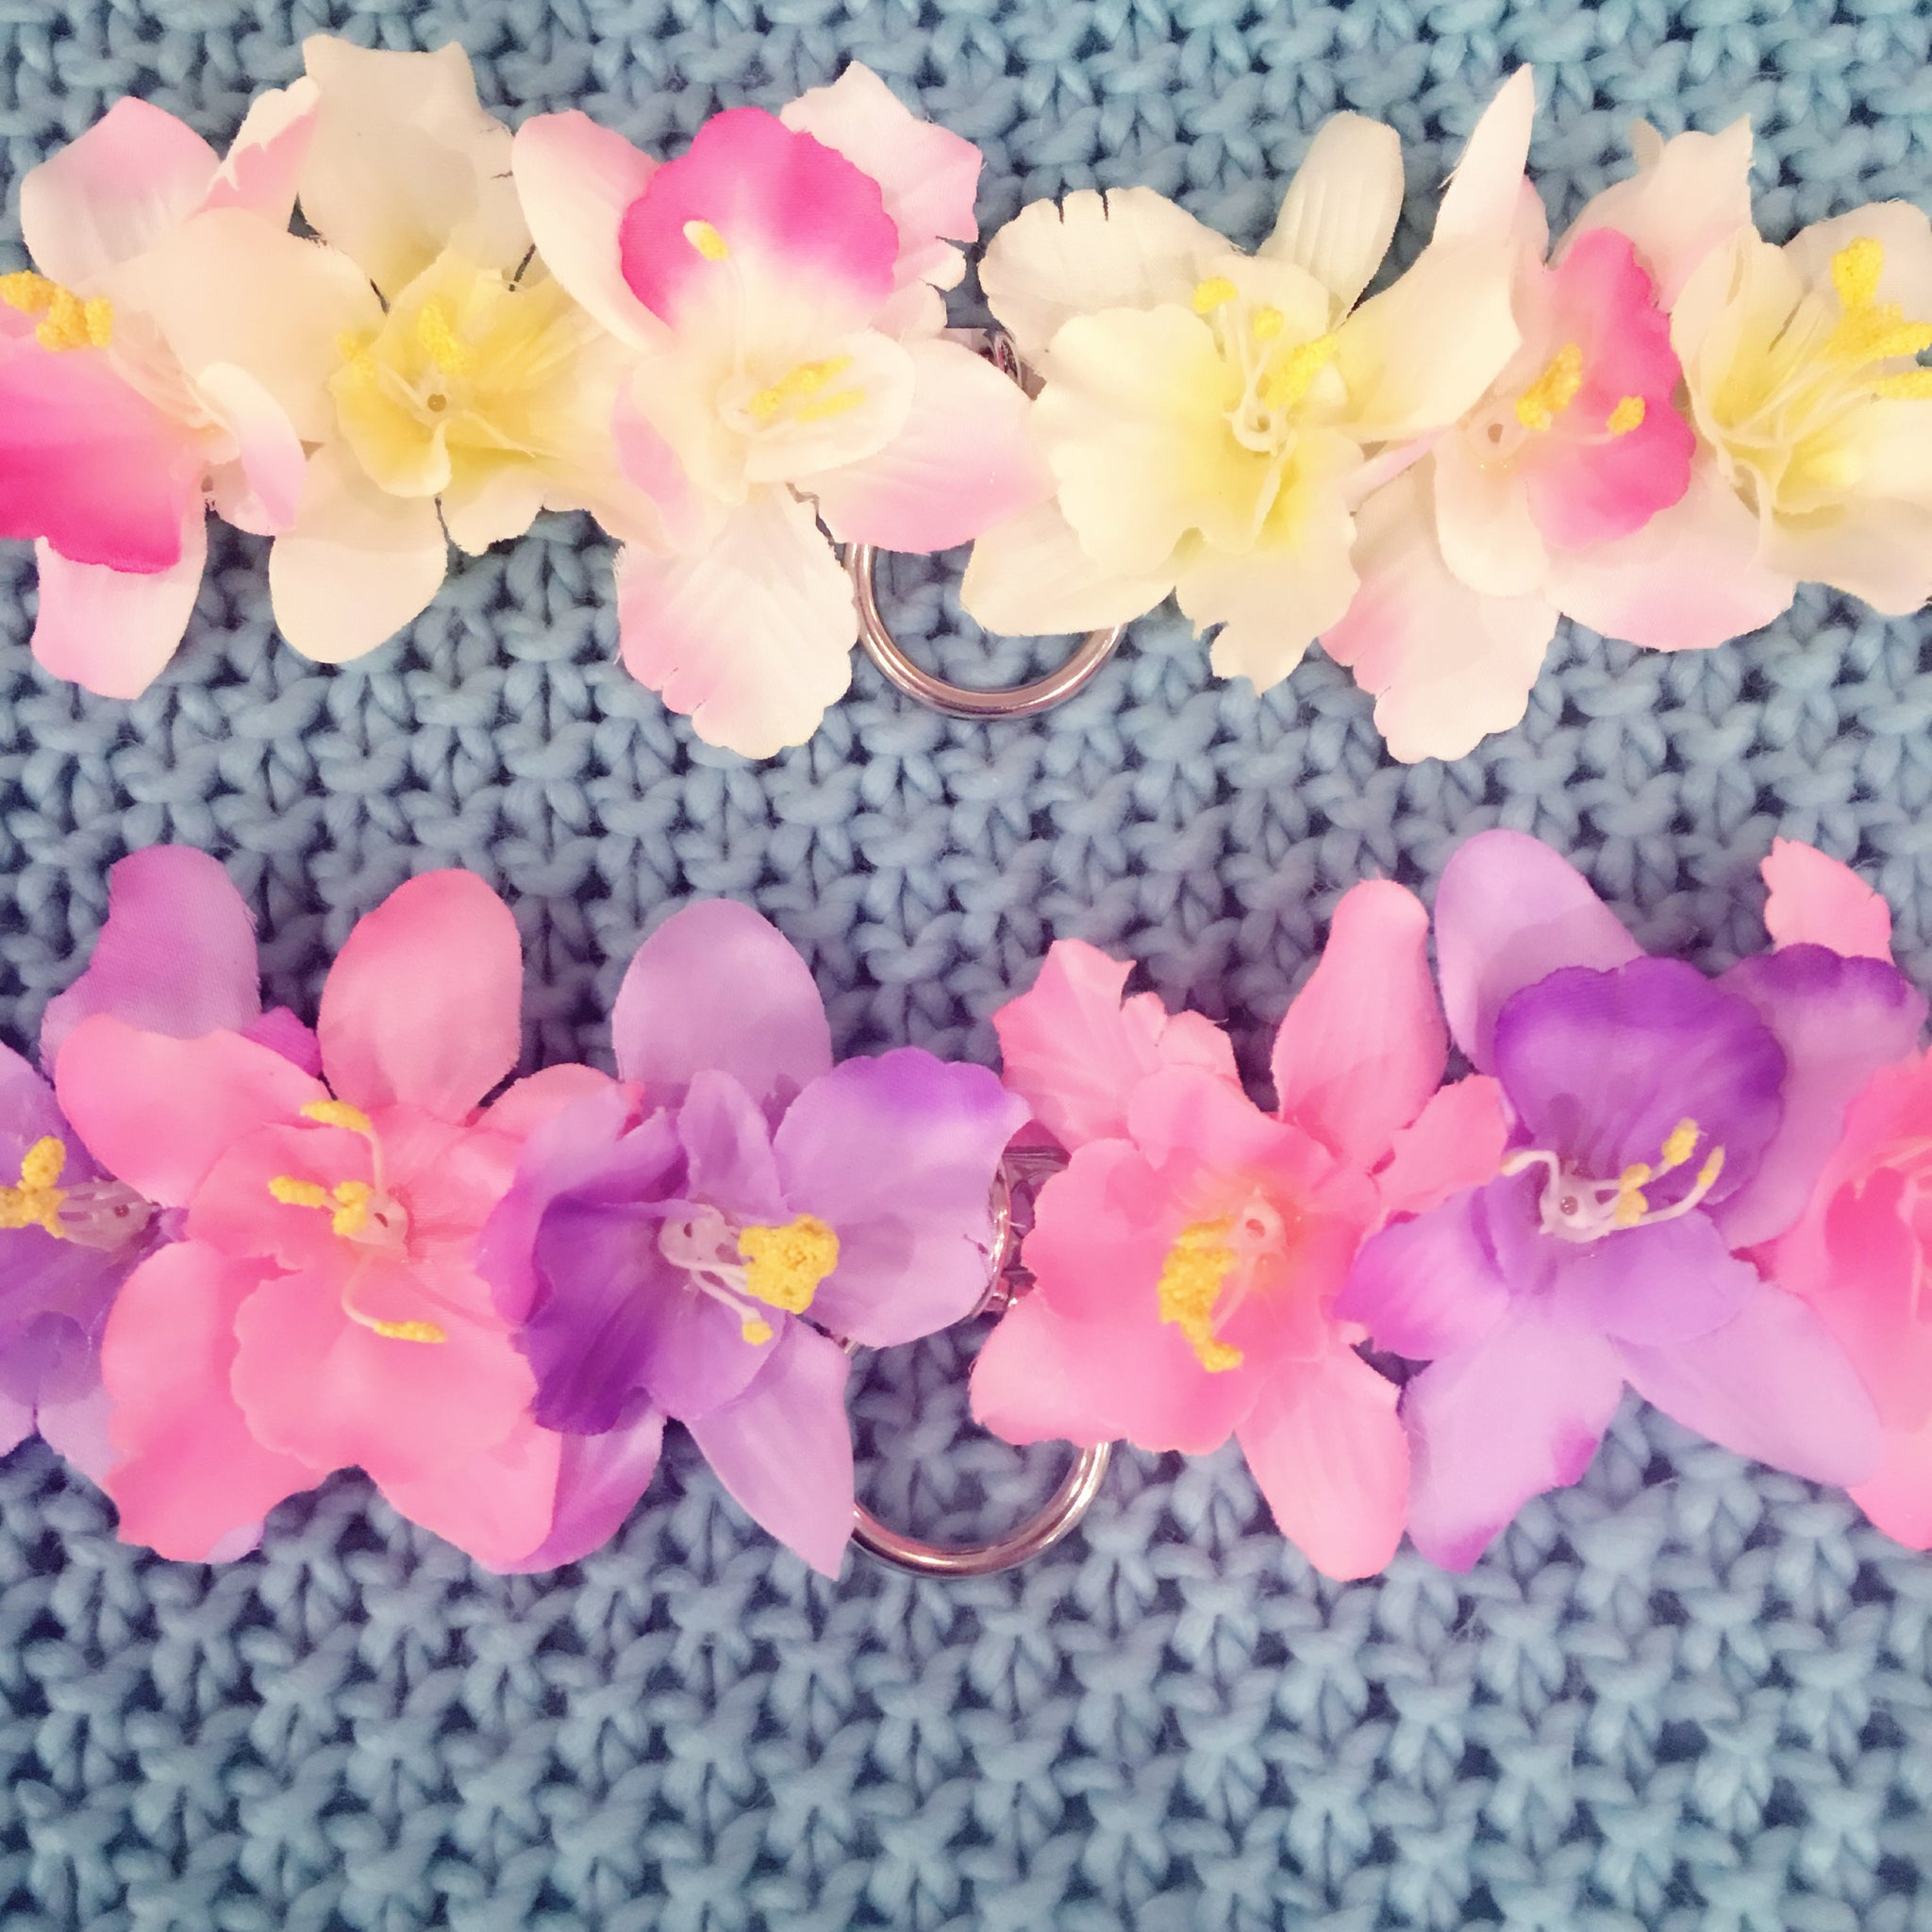 pastel choker collar necklace pink purple white flower floral accessories fashion at BABY VOODOO - BABYVOODOO.COM cute pastel aesthetic fashion baby girl aesthetic jewellery jewelry